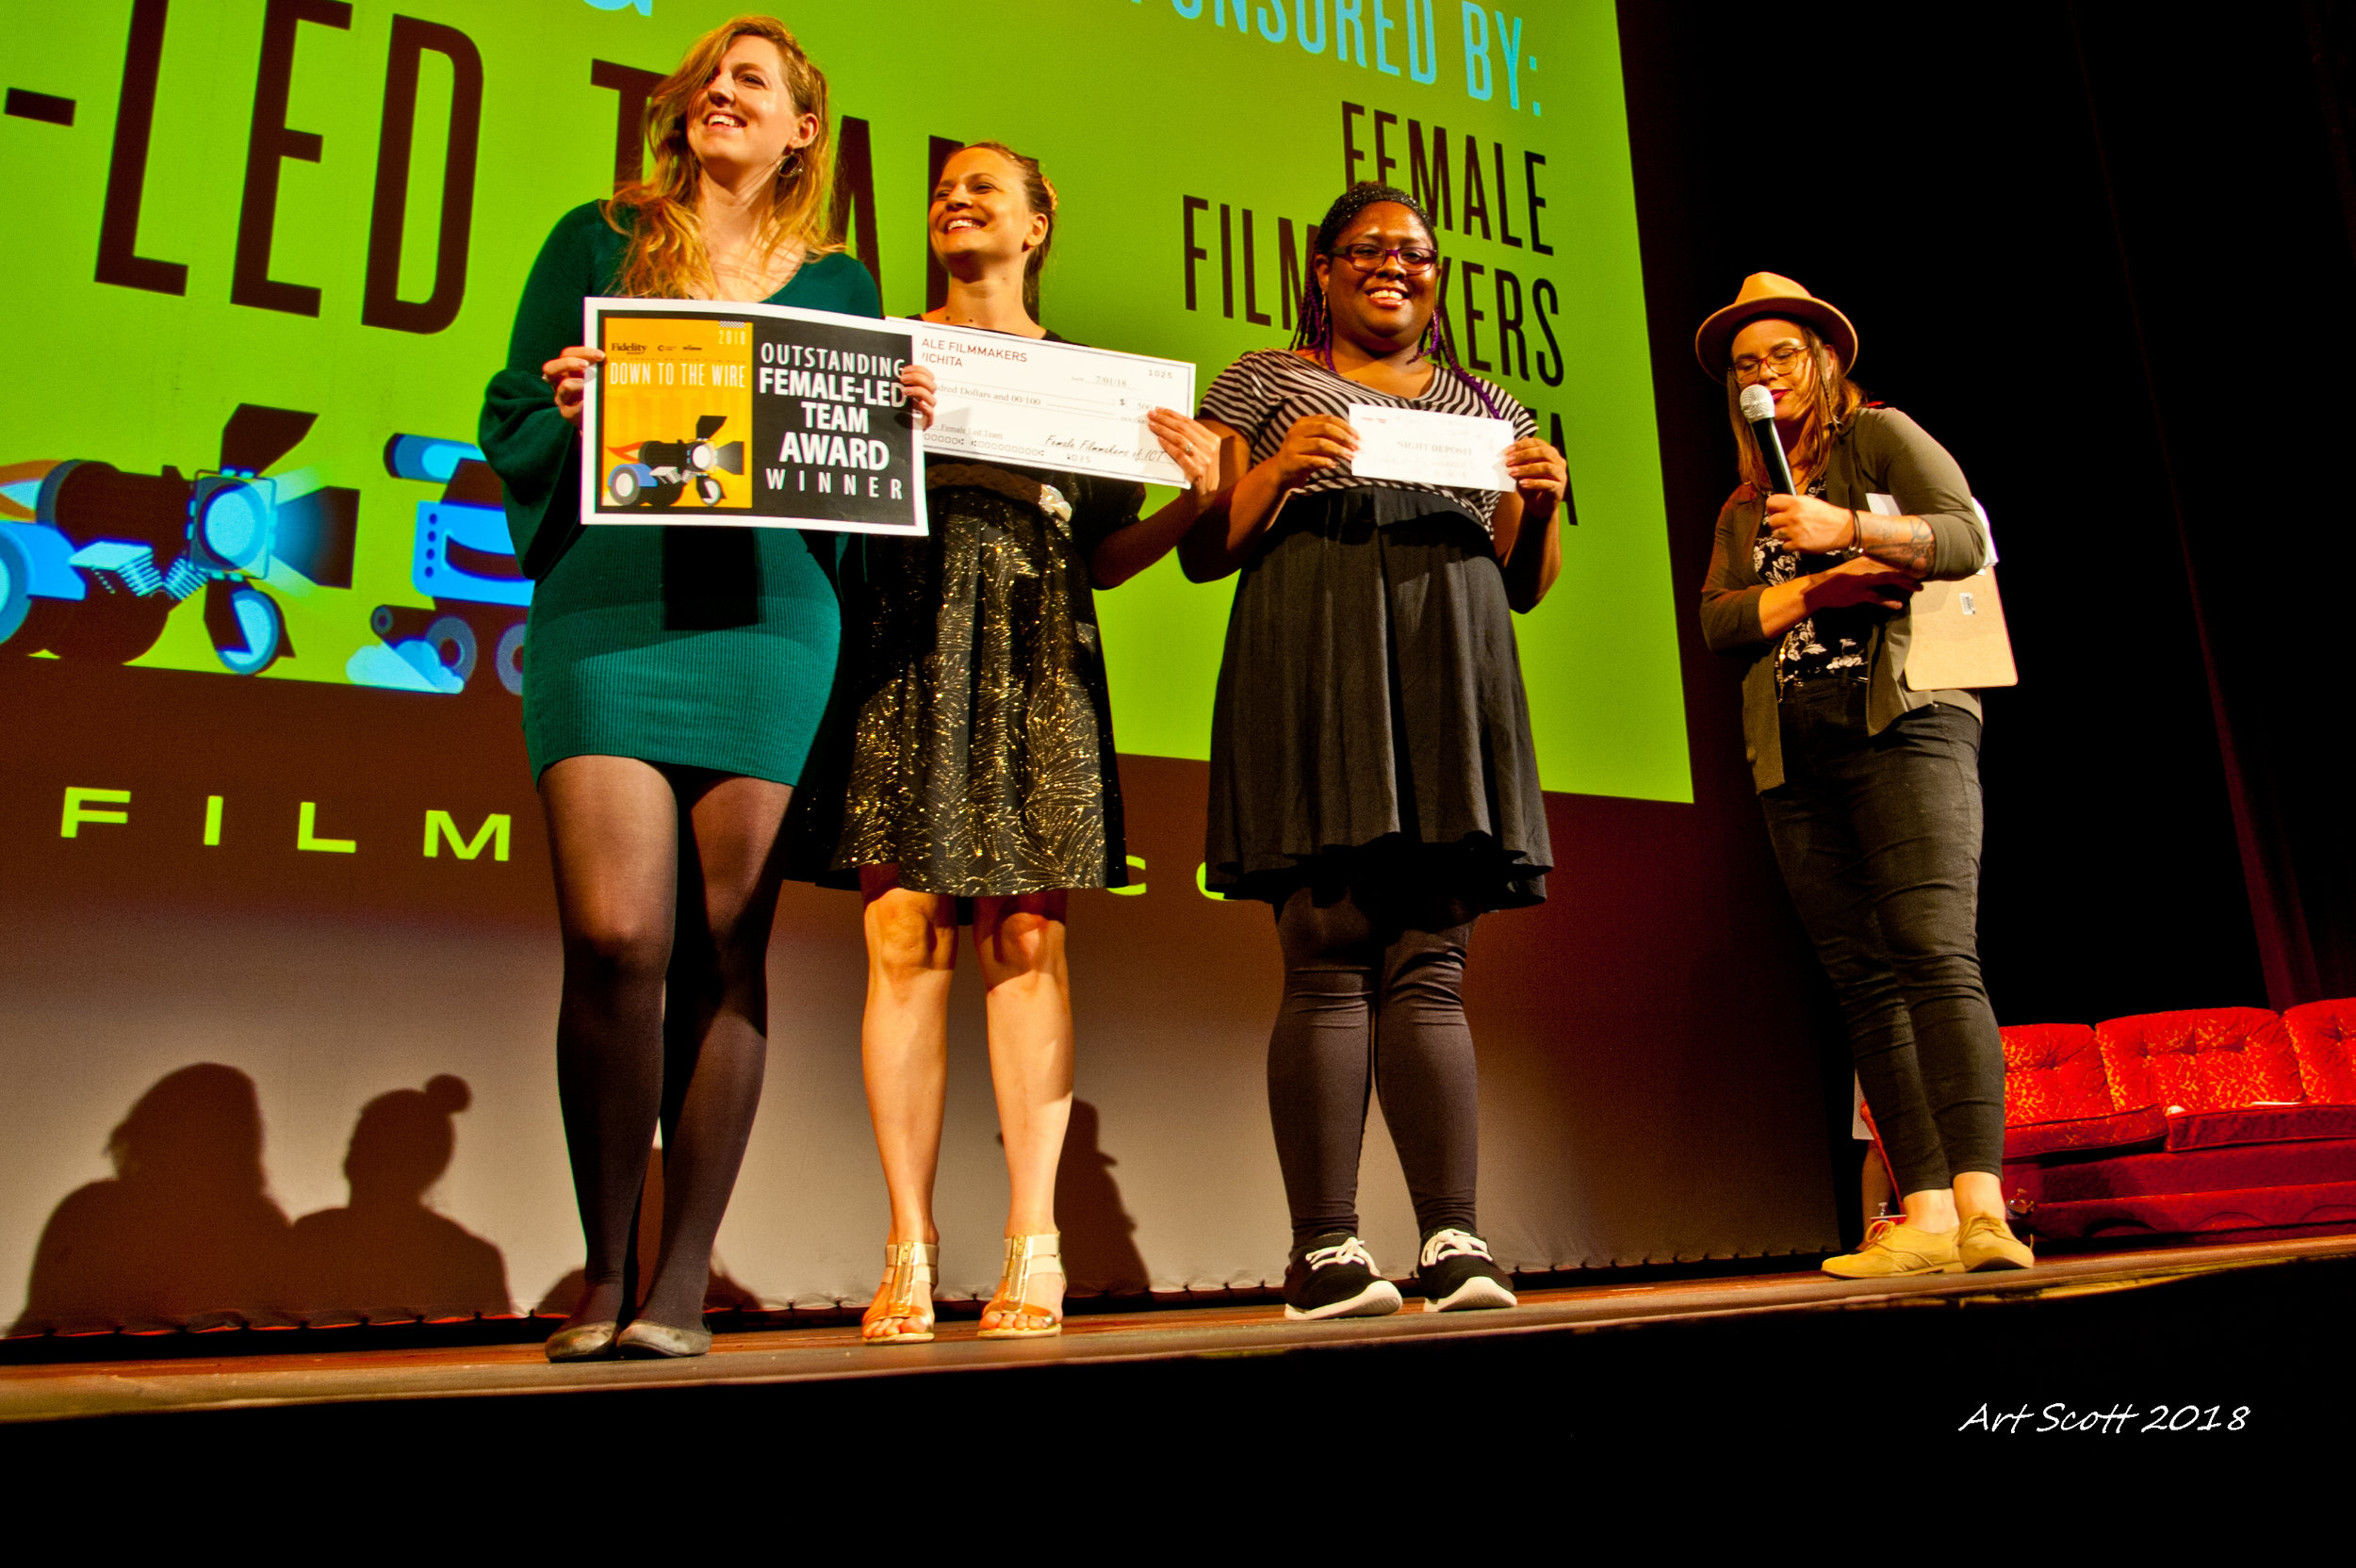 FEMMAKERS - With a wordplay on female filmmakers, we want to celebrate the creativity of womxn in Wichita with this new award!Even when it takes a village to pull off some of the things we do, we want to honour these outstanding womxn who through their endurance creating a short film in 24 hours shows excellence in storytelling and leadership. A Registered Team can qualify for the FEMMAKERS award if the team is an all-womxn team (of one to five registered members).